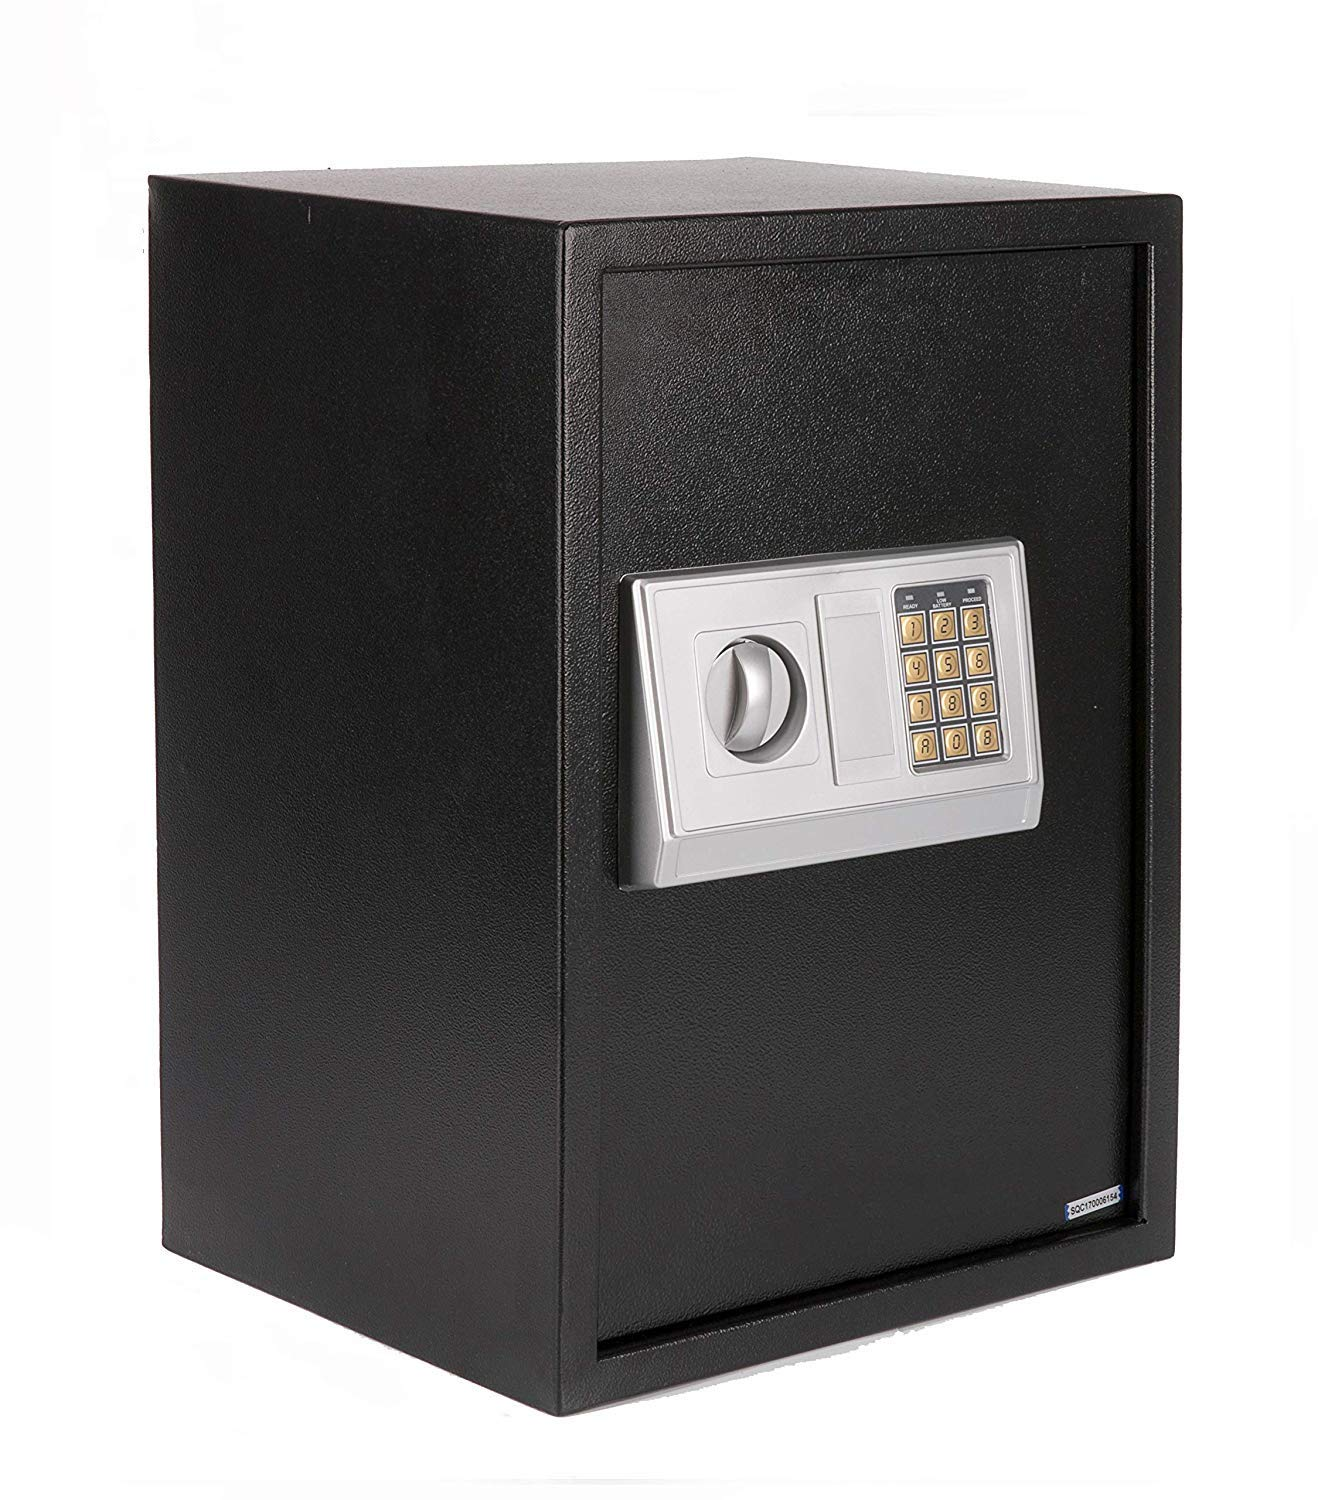 Windaze Large Electronic Digital Wall Safe Security Box Keypad Lock for Gun Cash Jewelry Valuable Storage, Silver Panel